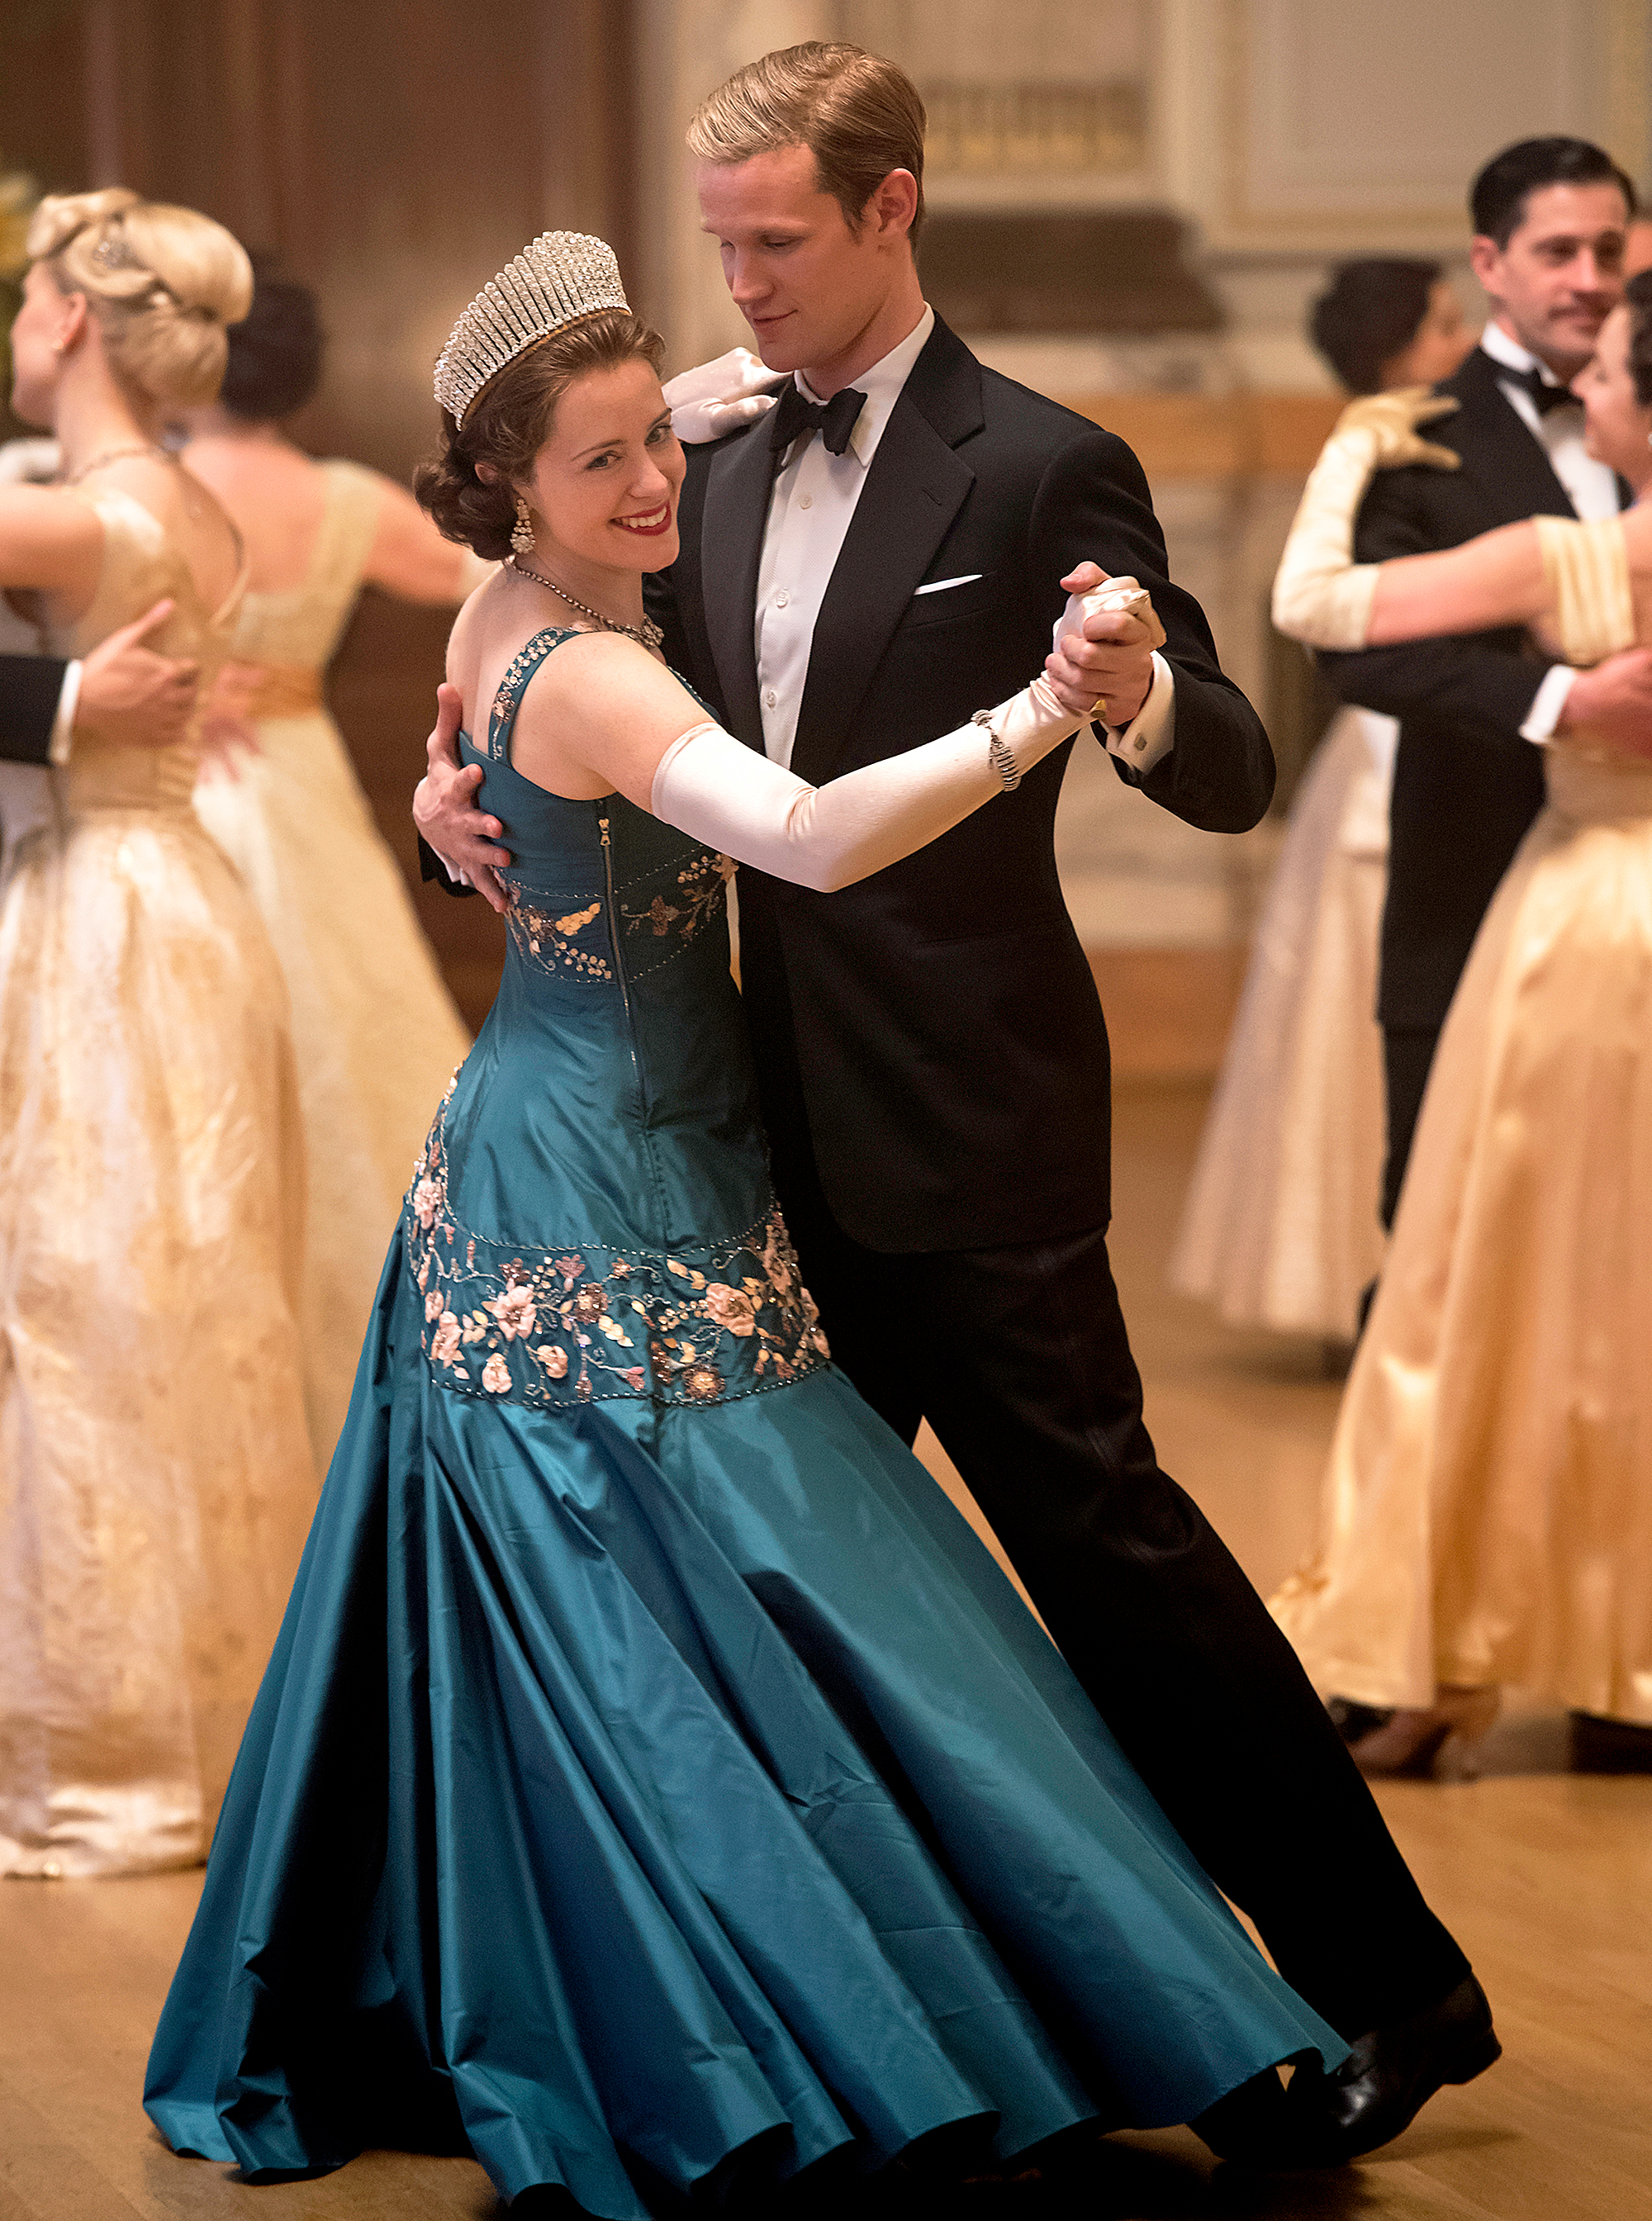 Claire Foy and Matt Smith as Queen Elizabeth and Prince Philip in 'The Crown'